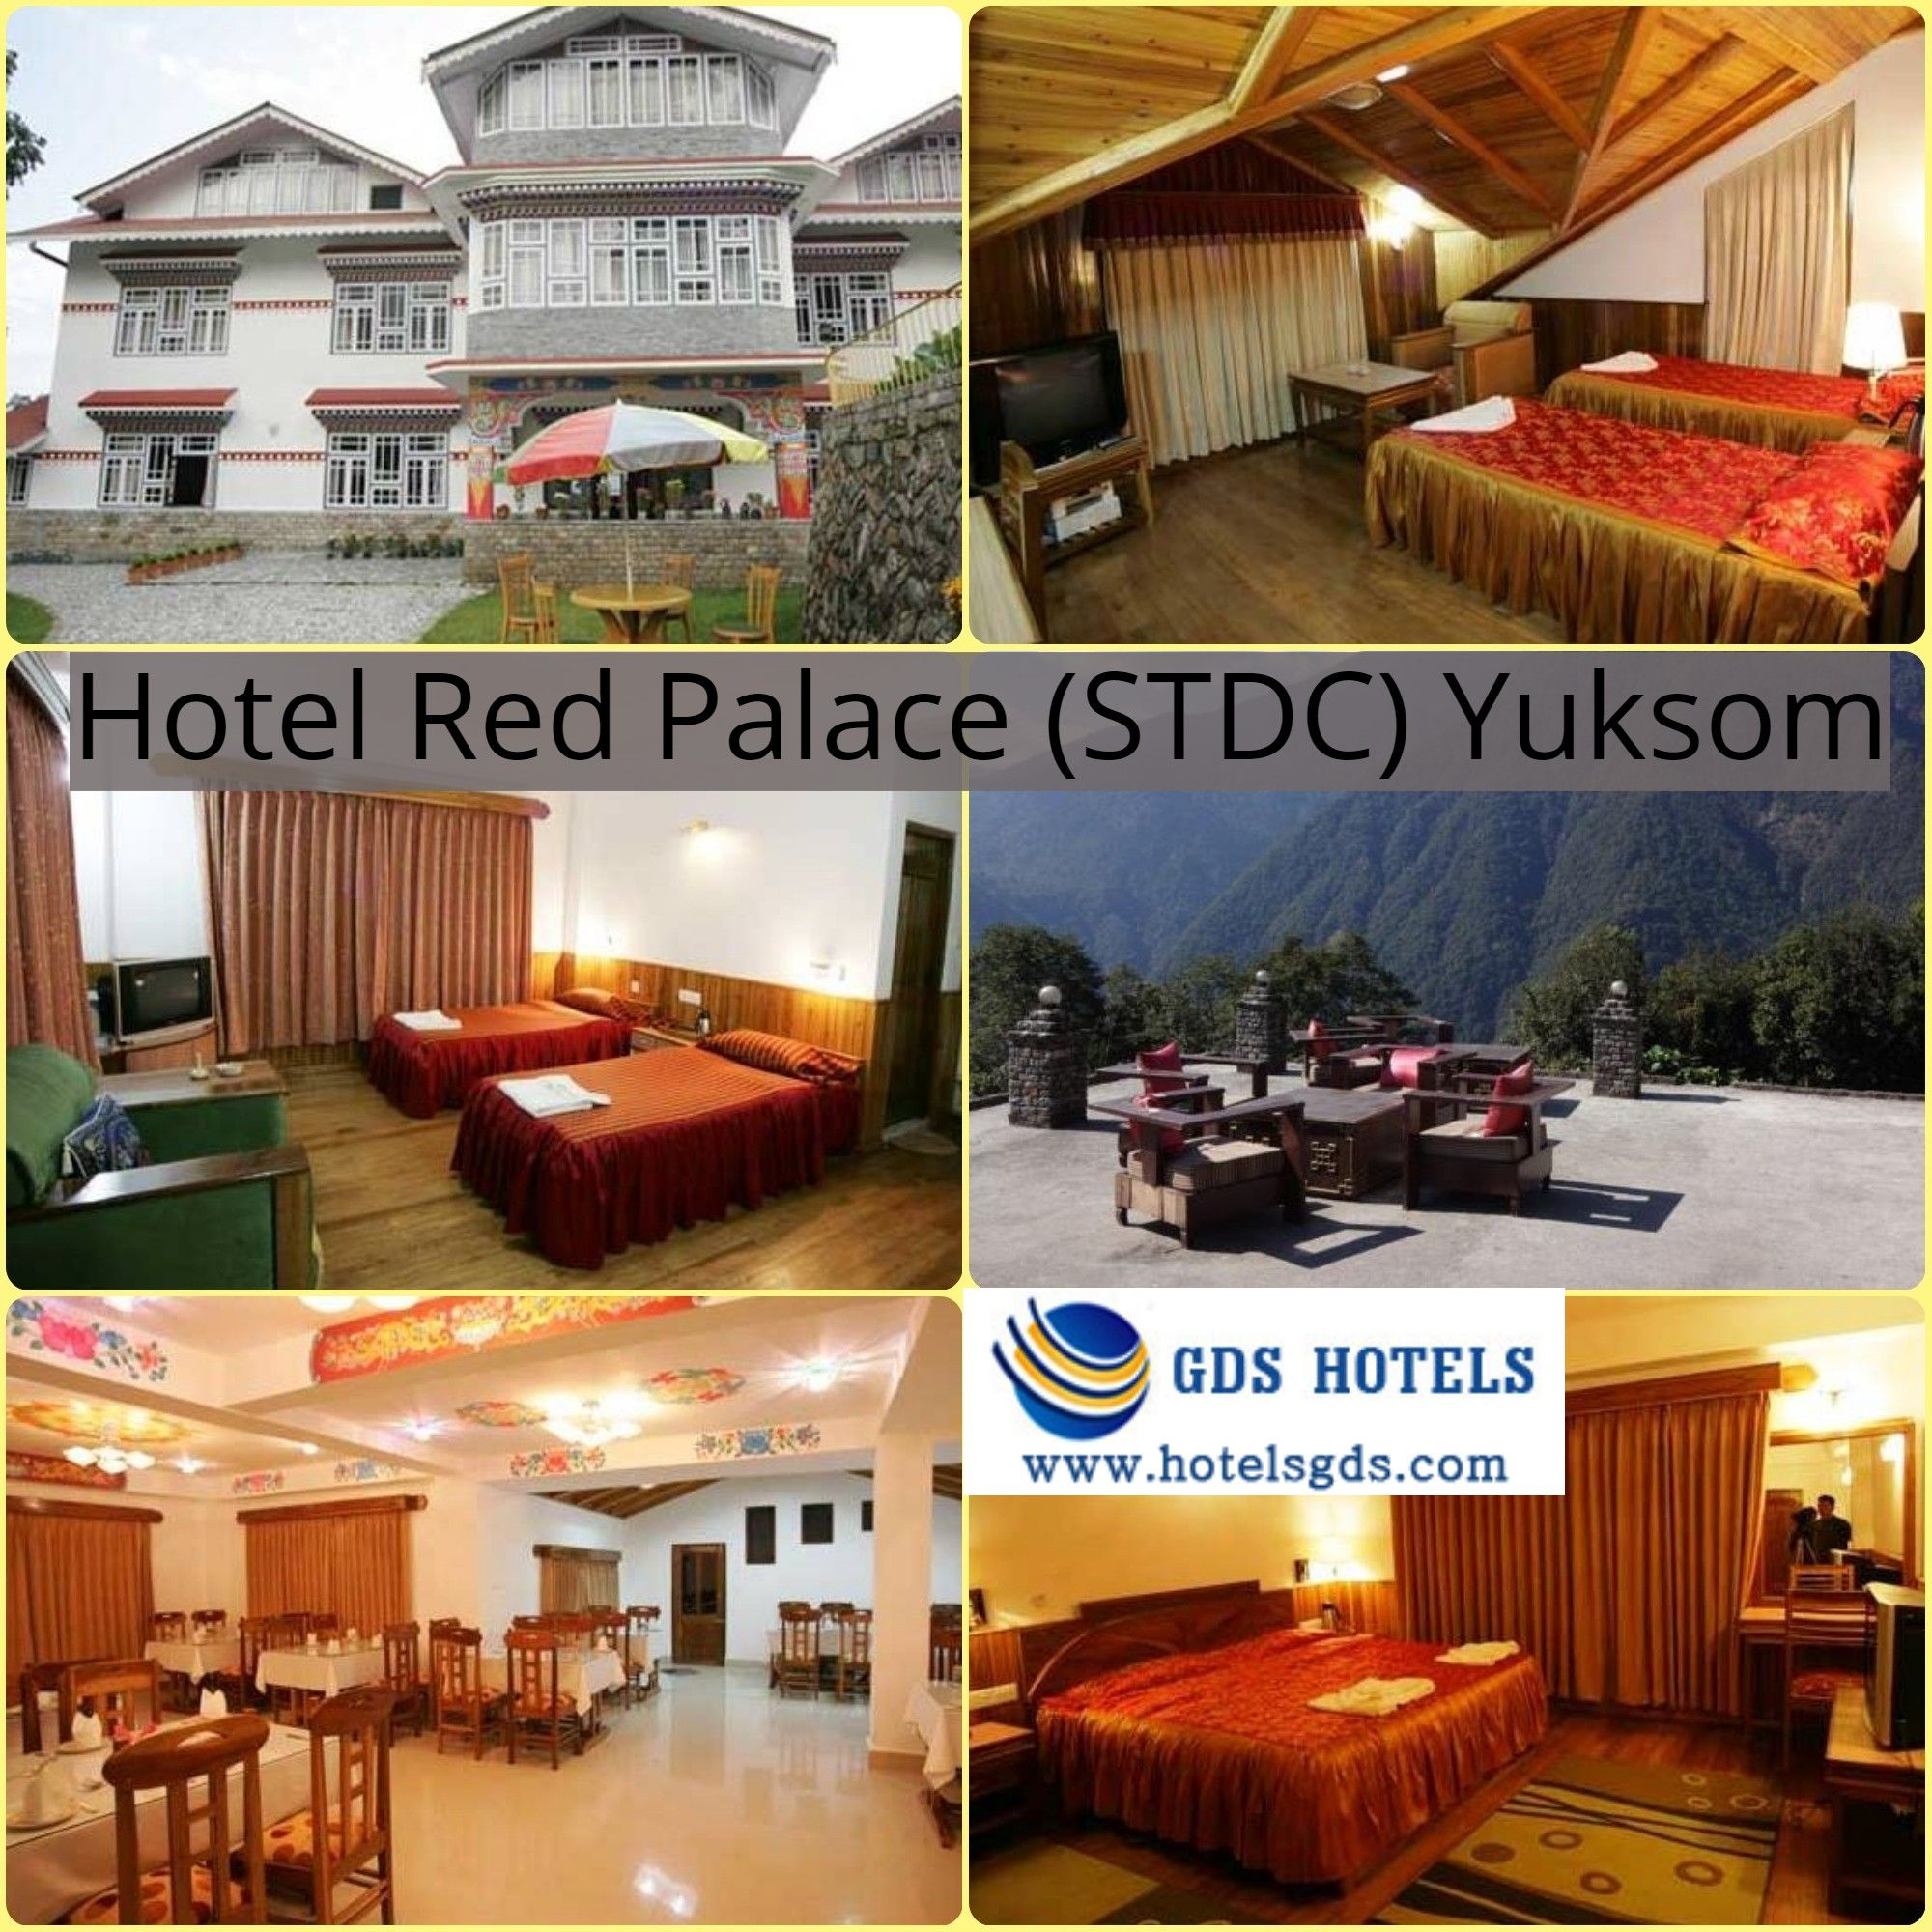 Hotel Red Palace located amongst natural beauty in the